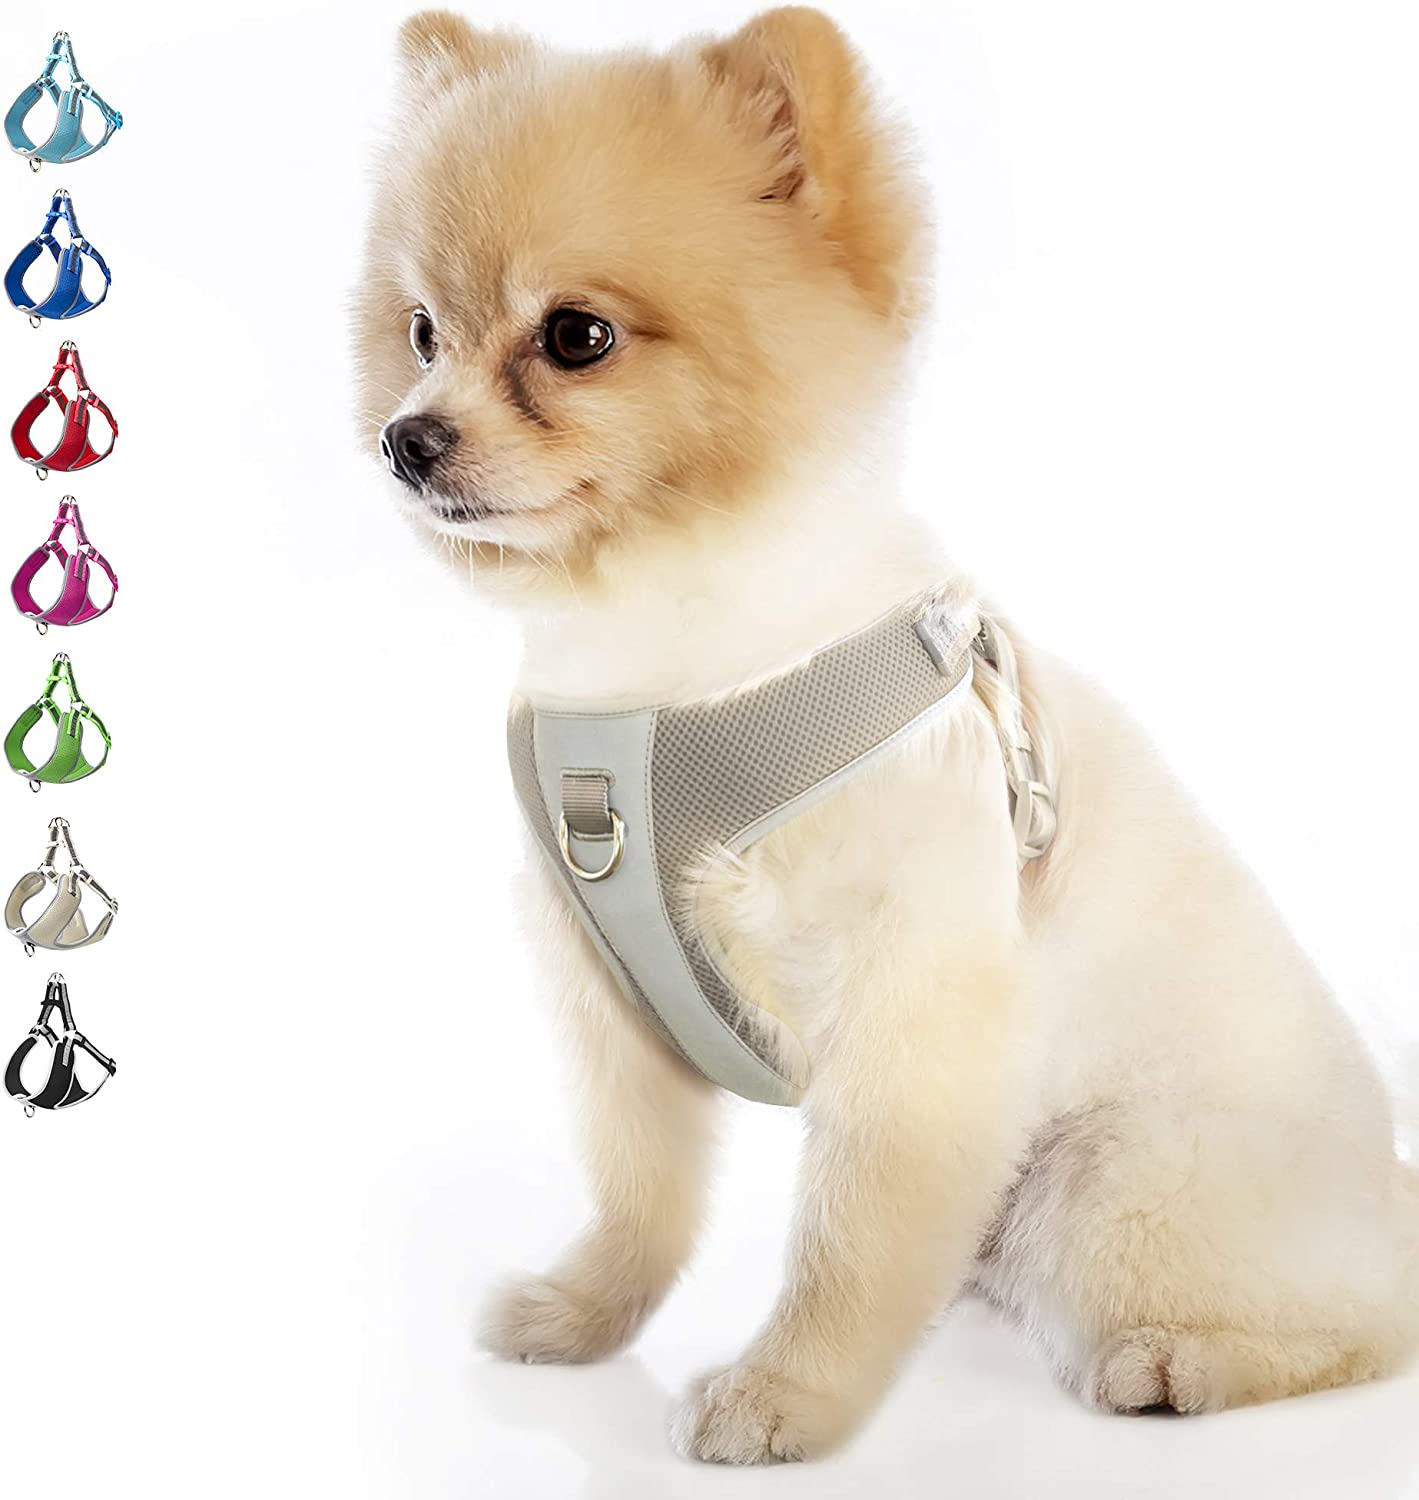 TwoEar Dog Harness Reflective Adjustable in Step Dealing full price reduction Pup Basic gift Nylon